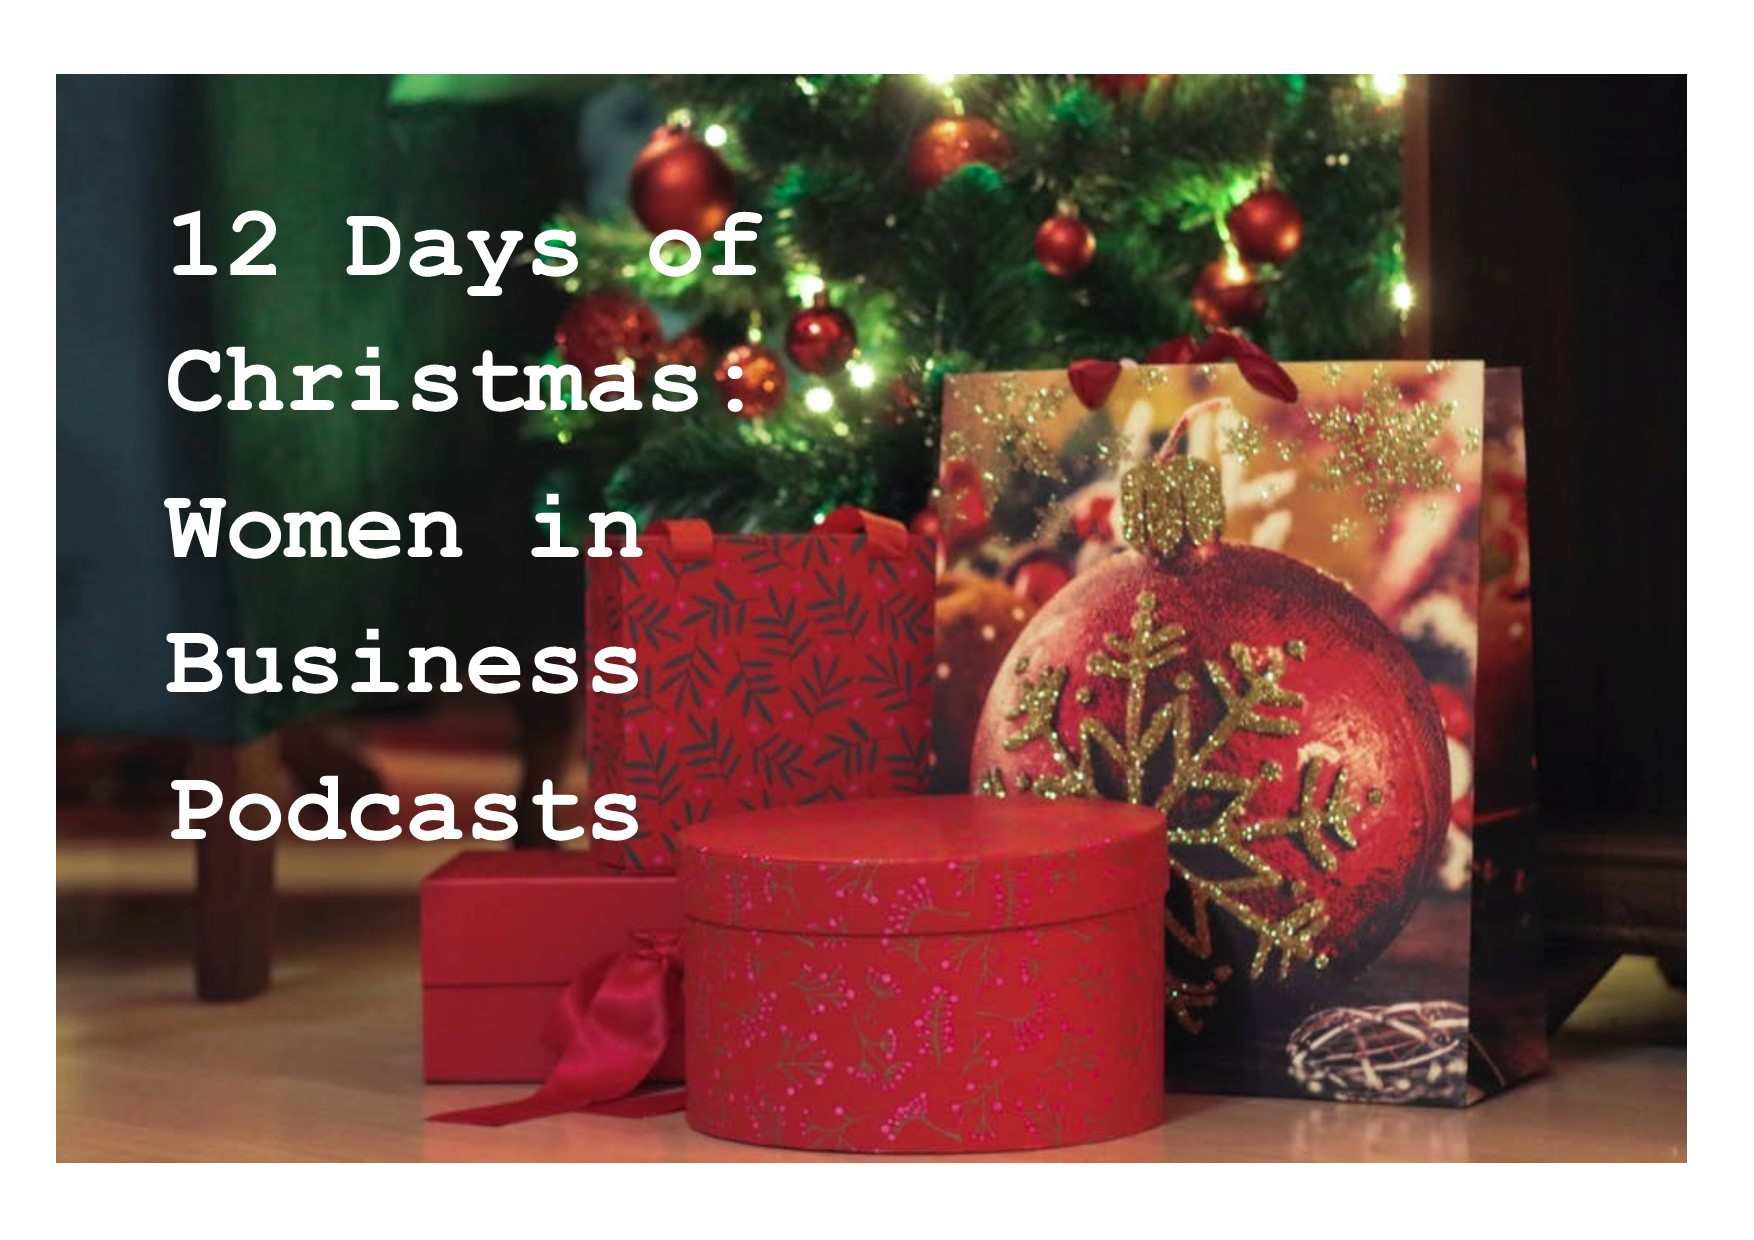 The Gift of Entrepreneurship: 12 Days of Christmas with Women in Business Podcasters